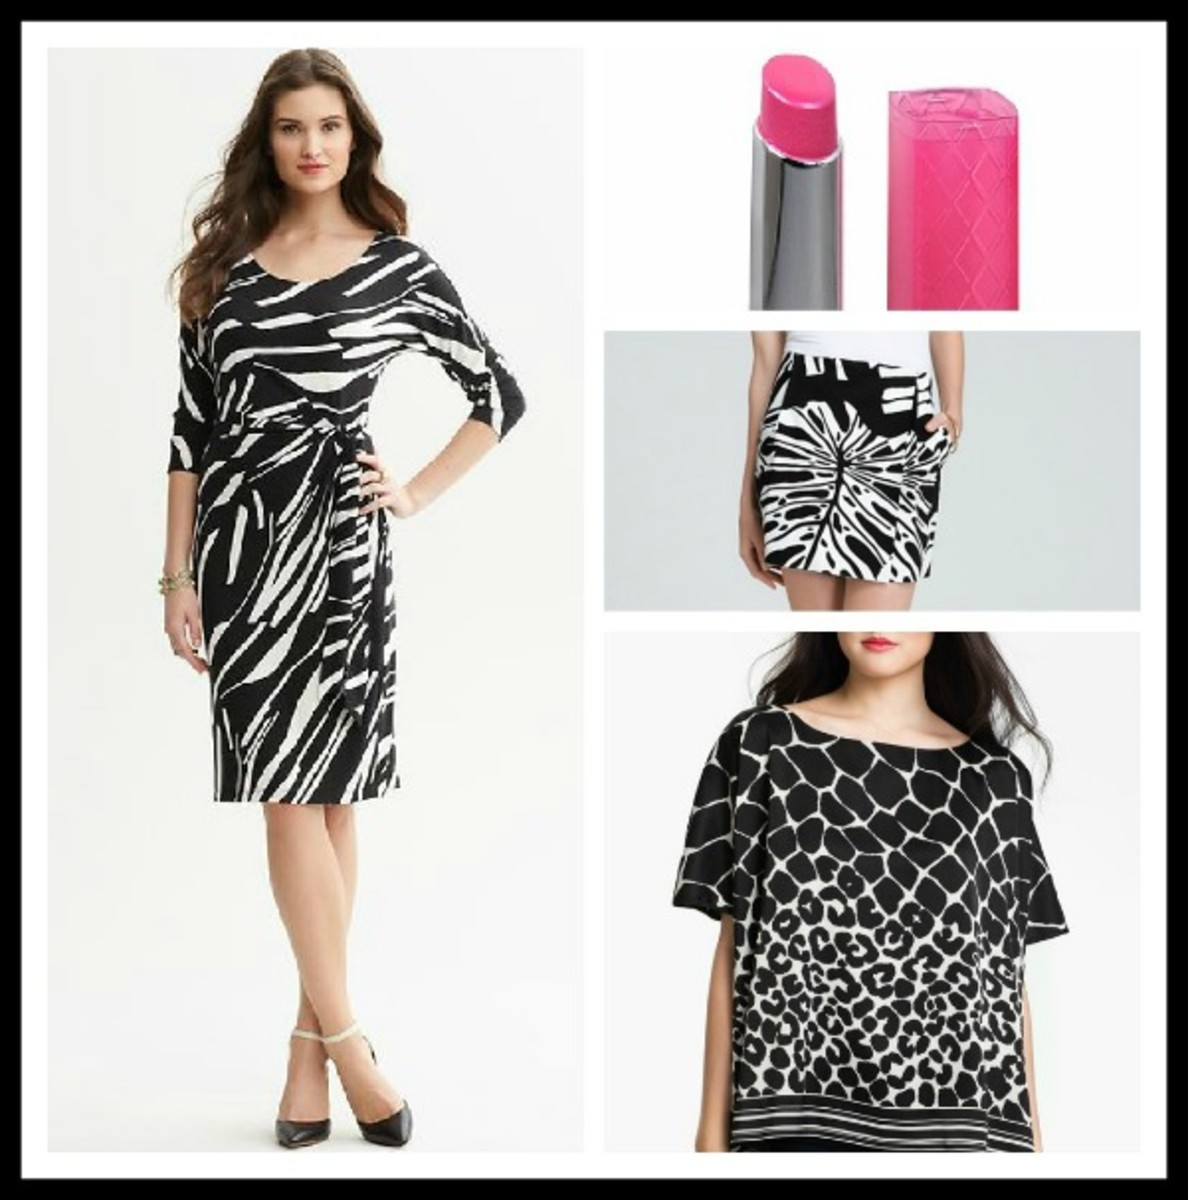 black and white, black and white prints, spring 2013 fashion trends